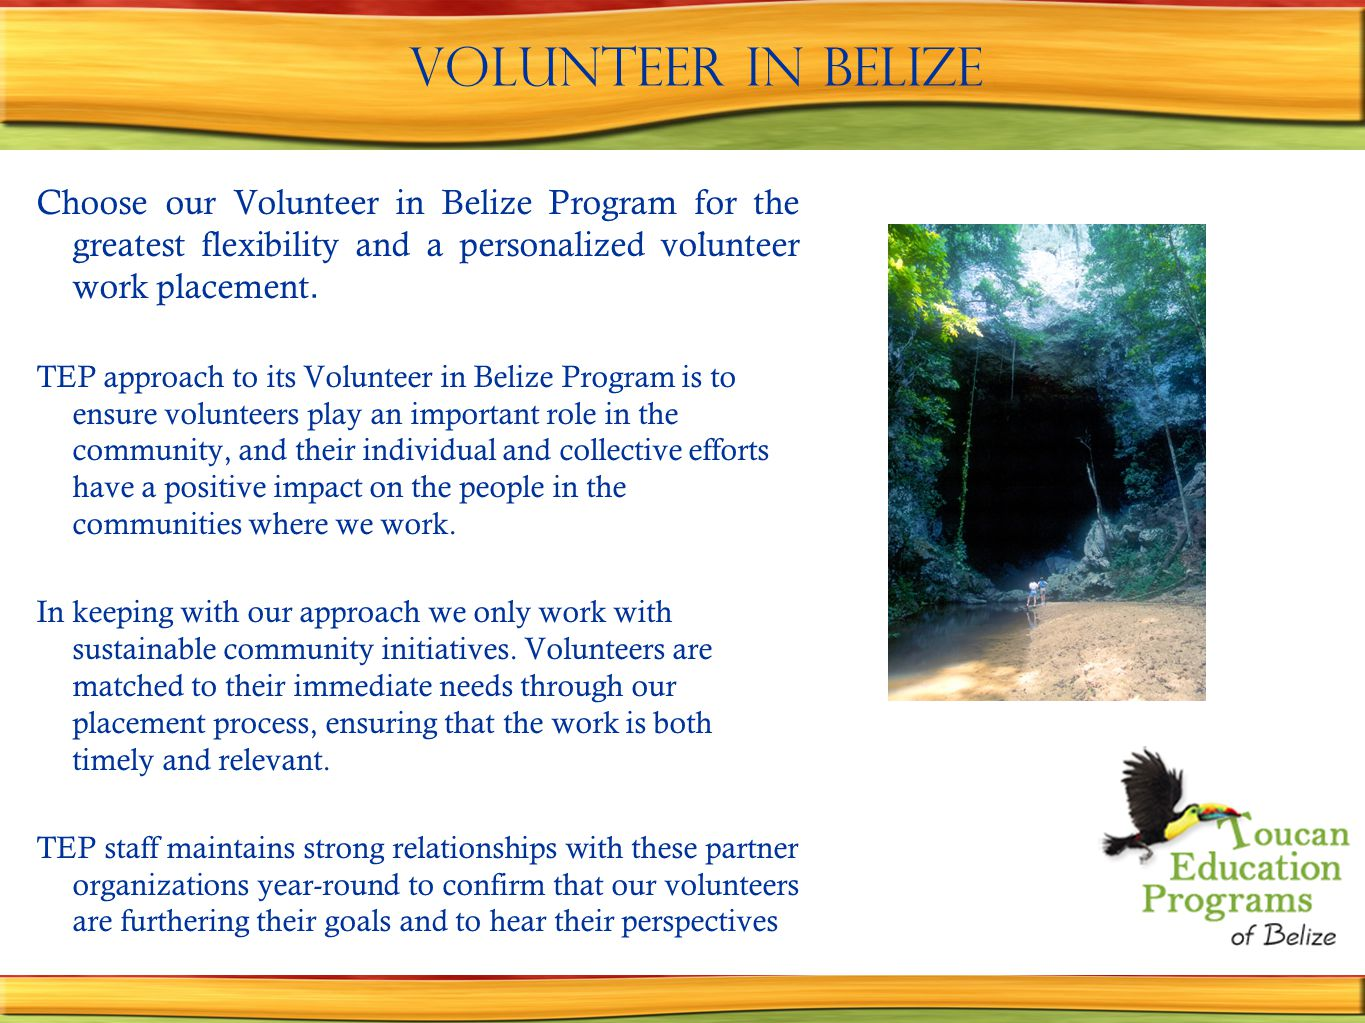 Volunteer in Belize.